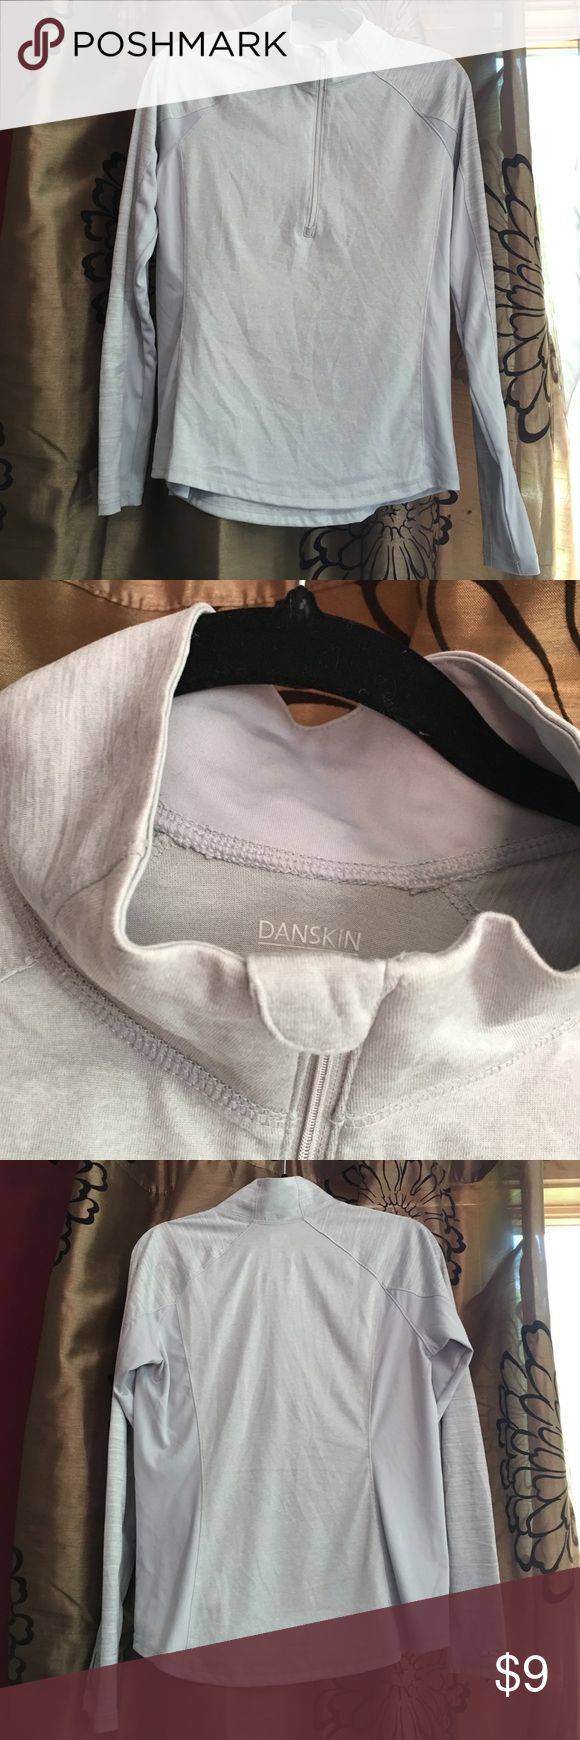 Danskin pullover top Gray/ silver danskin under layer. Great for fall weather. Worn once with zero signs of any wear. 3/4 zip. Chin protection from the zipper if worn under ski or snow mobile clothing. Demi fitted. Danskin Tops